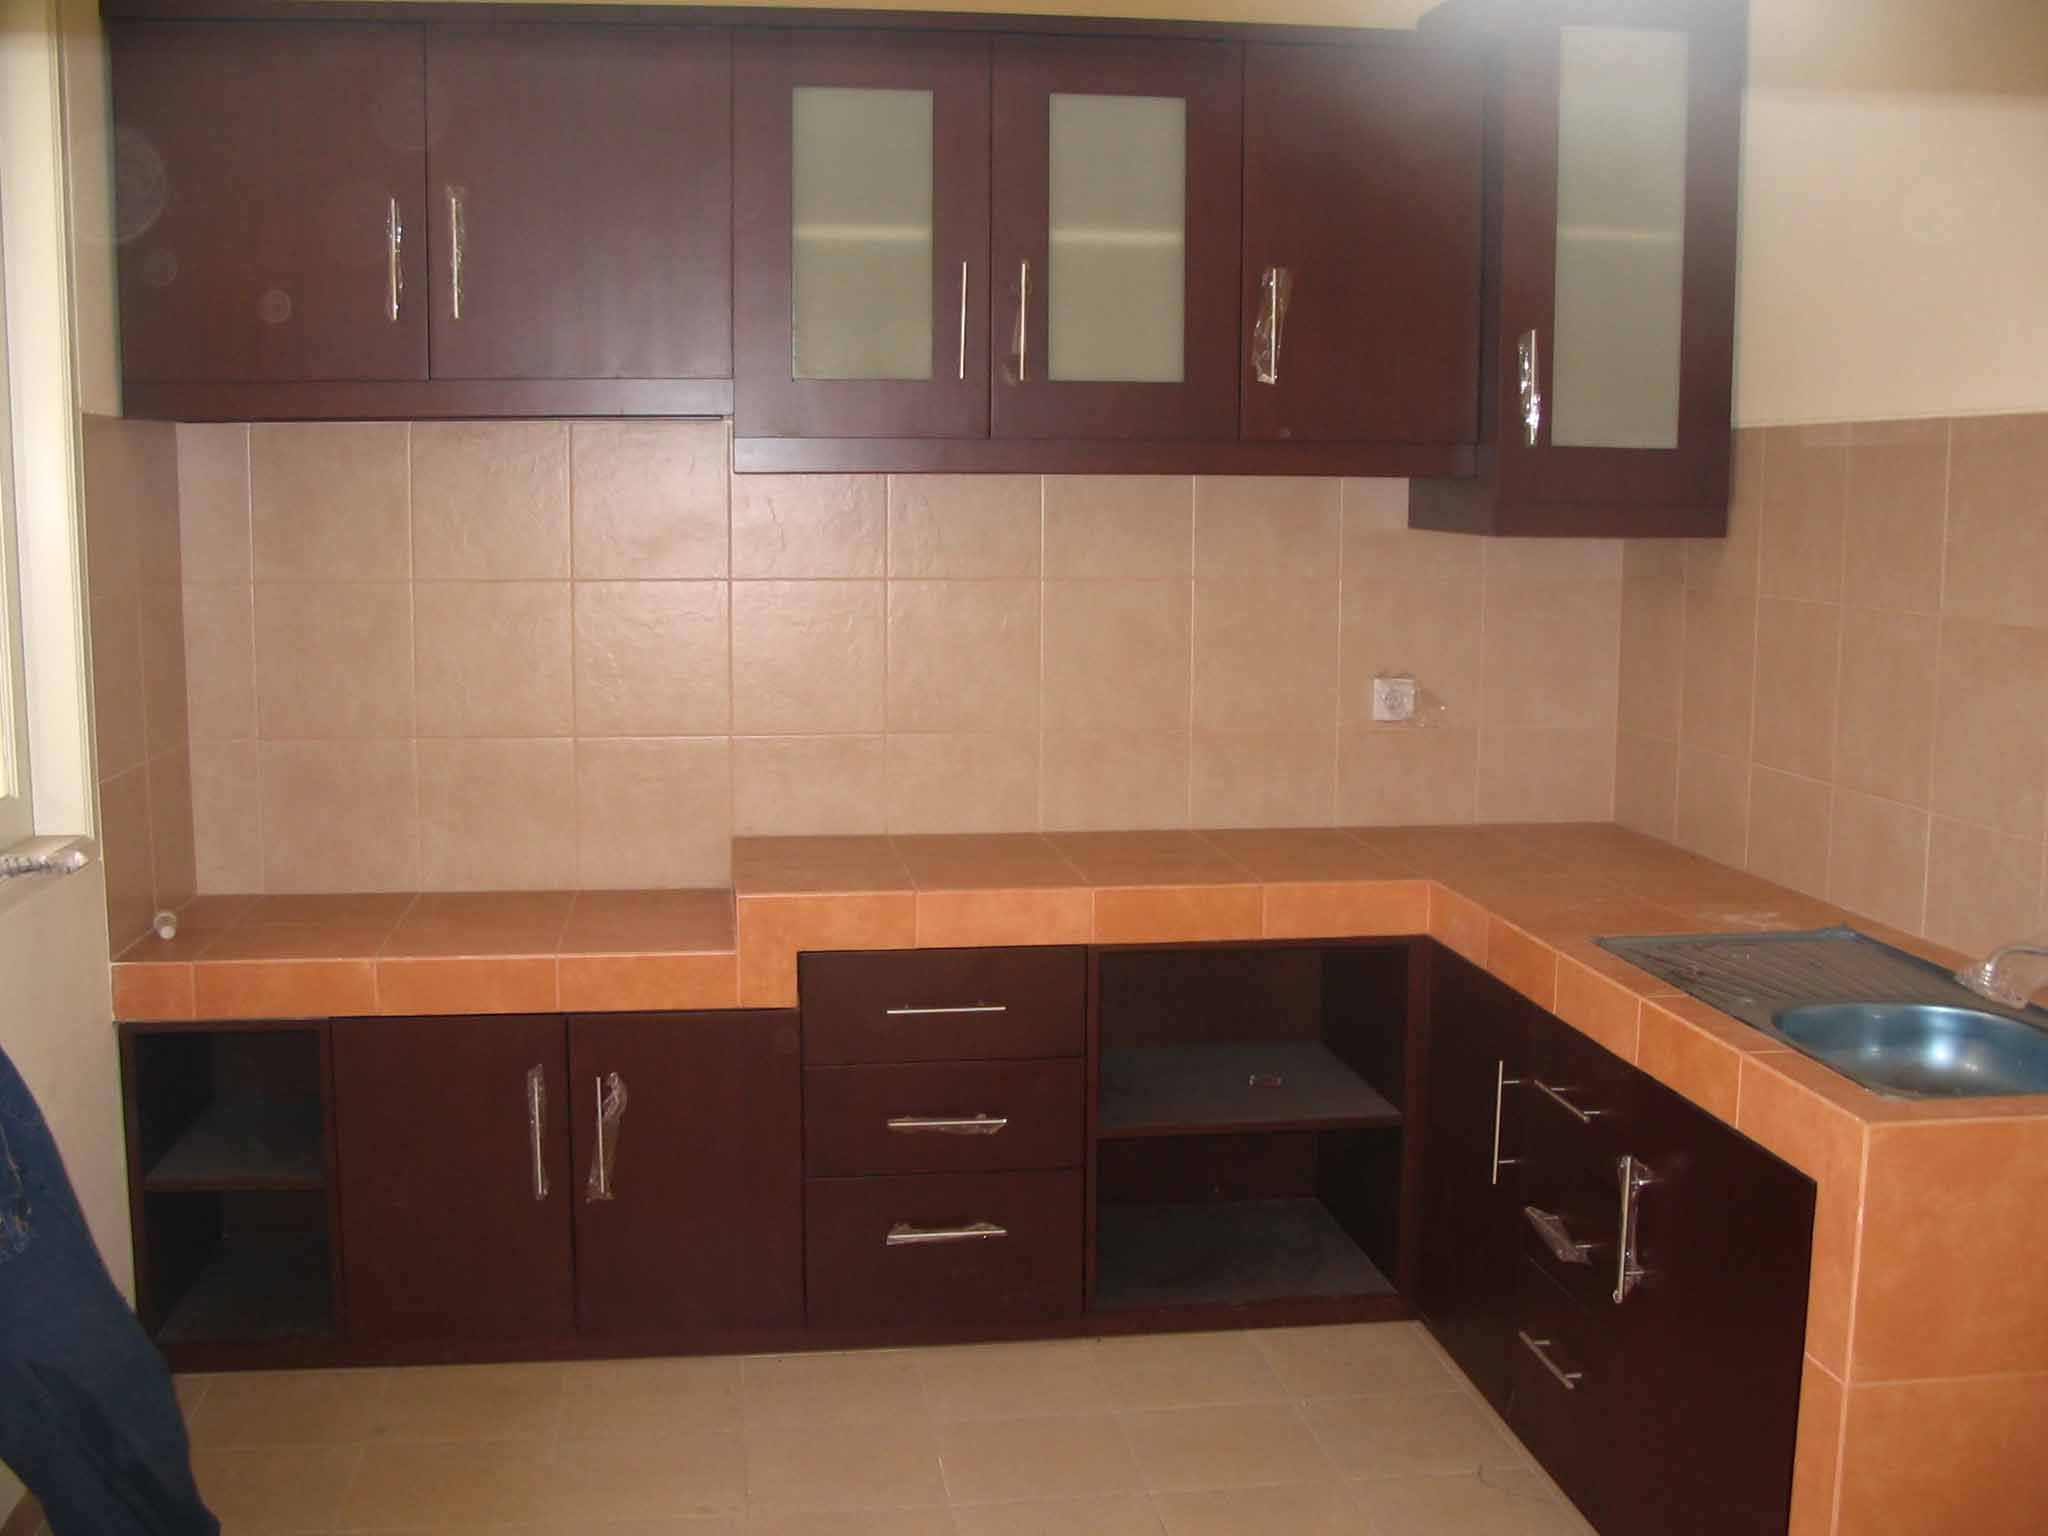 Kitchen Set Dapur Furniture Mebel Interior Arsitektur